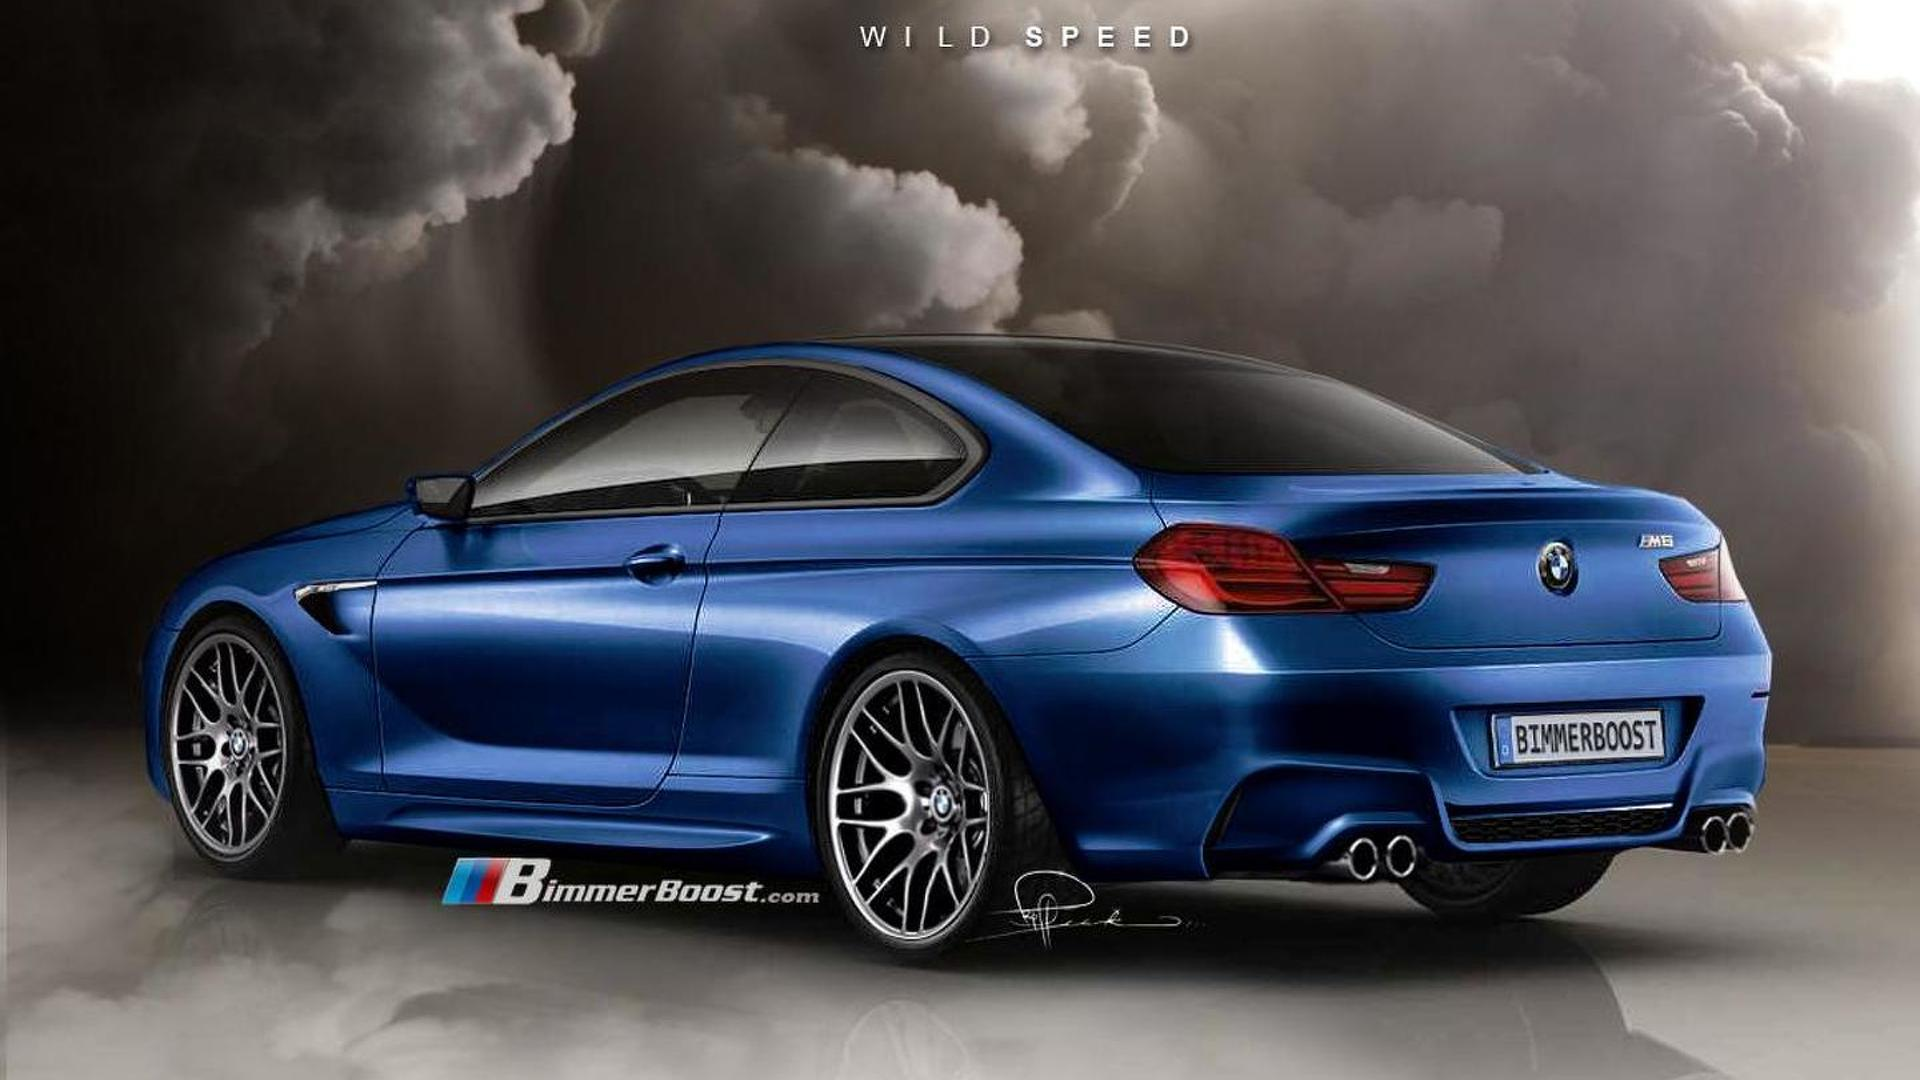 bmw m6 f12 renderings based on 6 series coupe concept surface. Black Bedroom Furniture Sets. Home Design Ideas